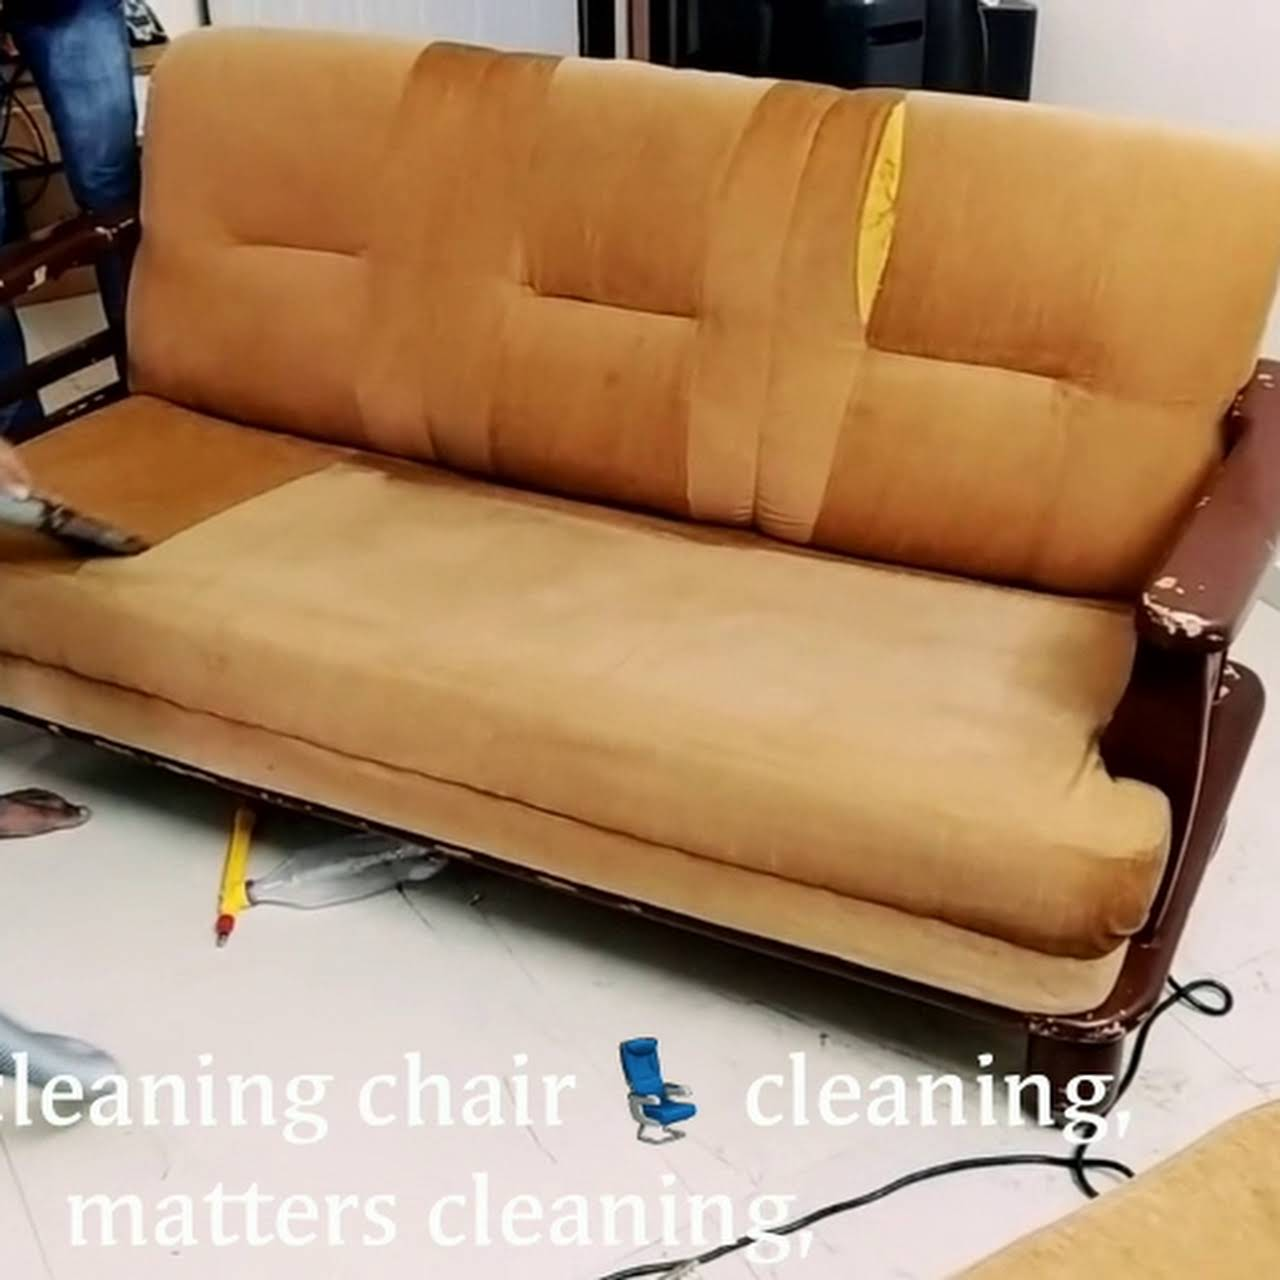 a1 sofa cleaning navi mumbai maharashtra foam cushions chennai z s enterprises cleaner repair furniture polish posted on aug 31 2018 professional service all over